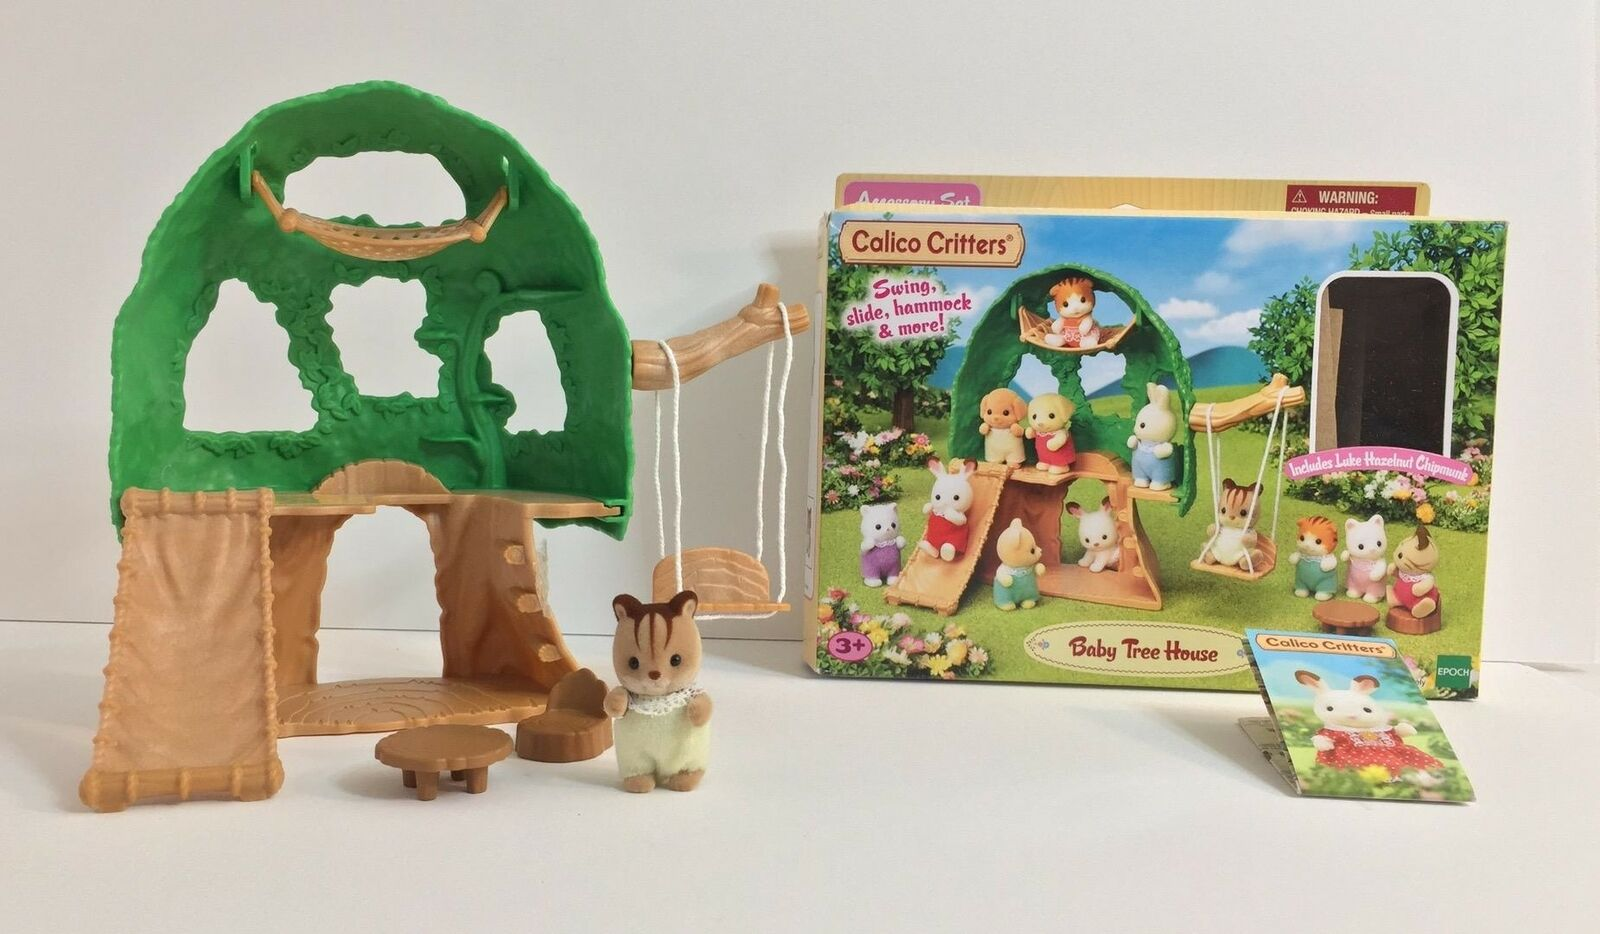 Picture of: Calico Critters Baby Tree House Cc1791 Hammock Slide Swing For Sale Online Ebay